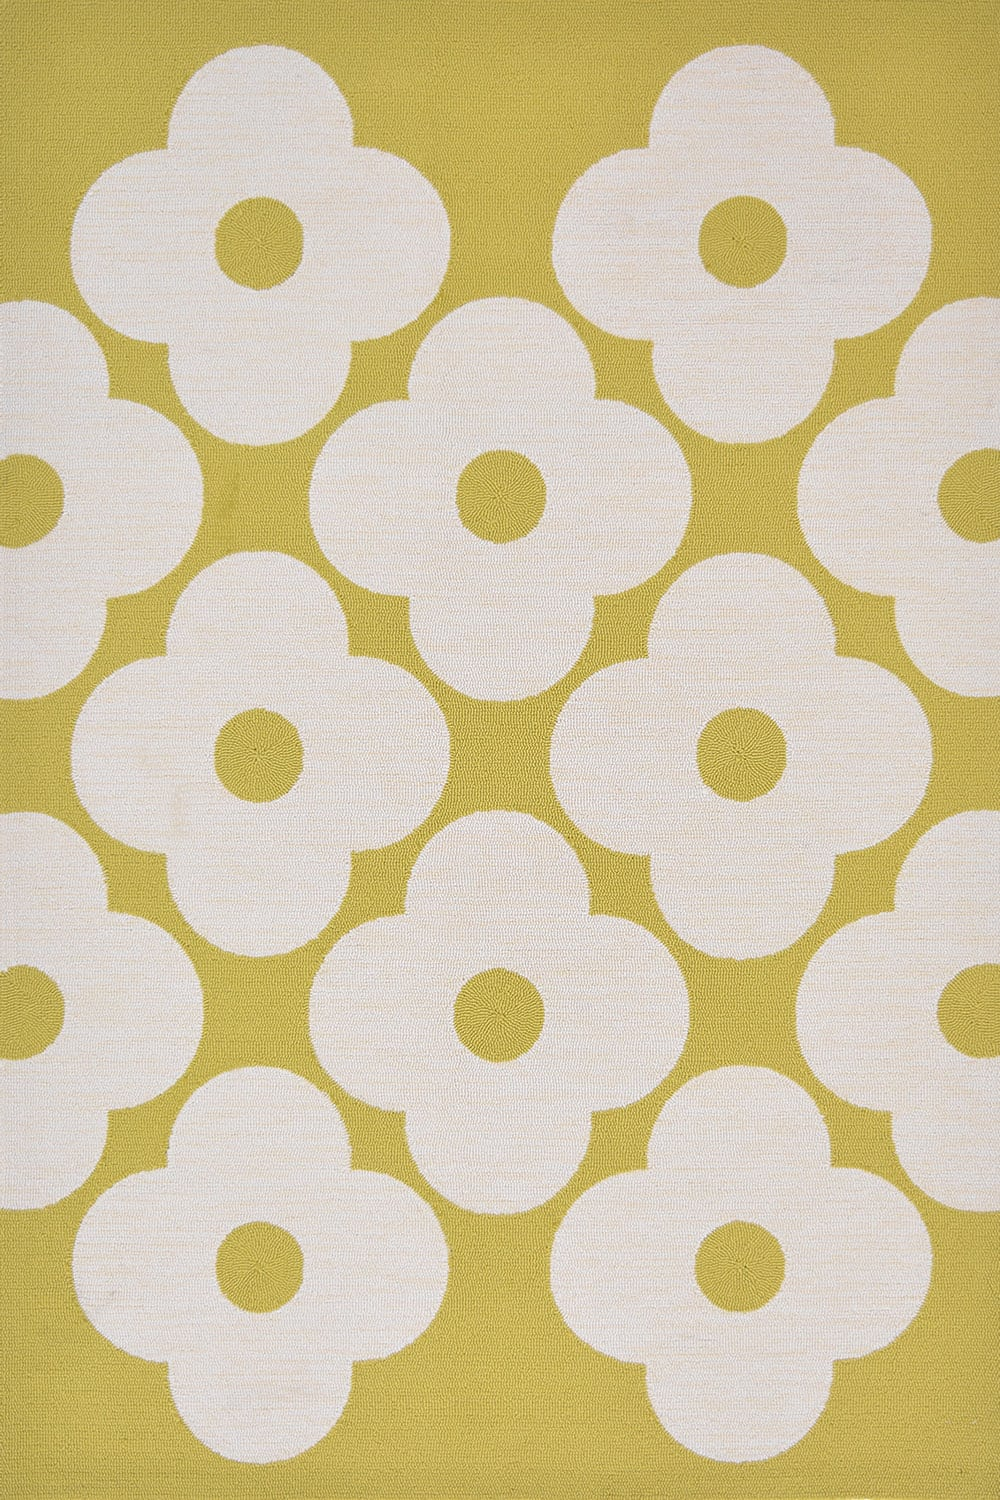 Χαλί Spot Flower 460806 Yellow-White Orla Kiely 200X300